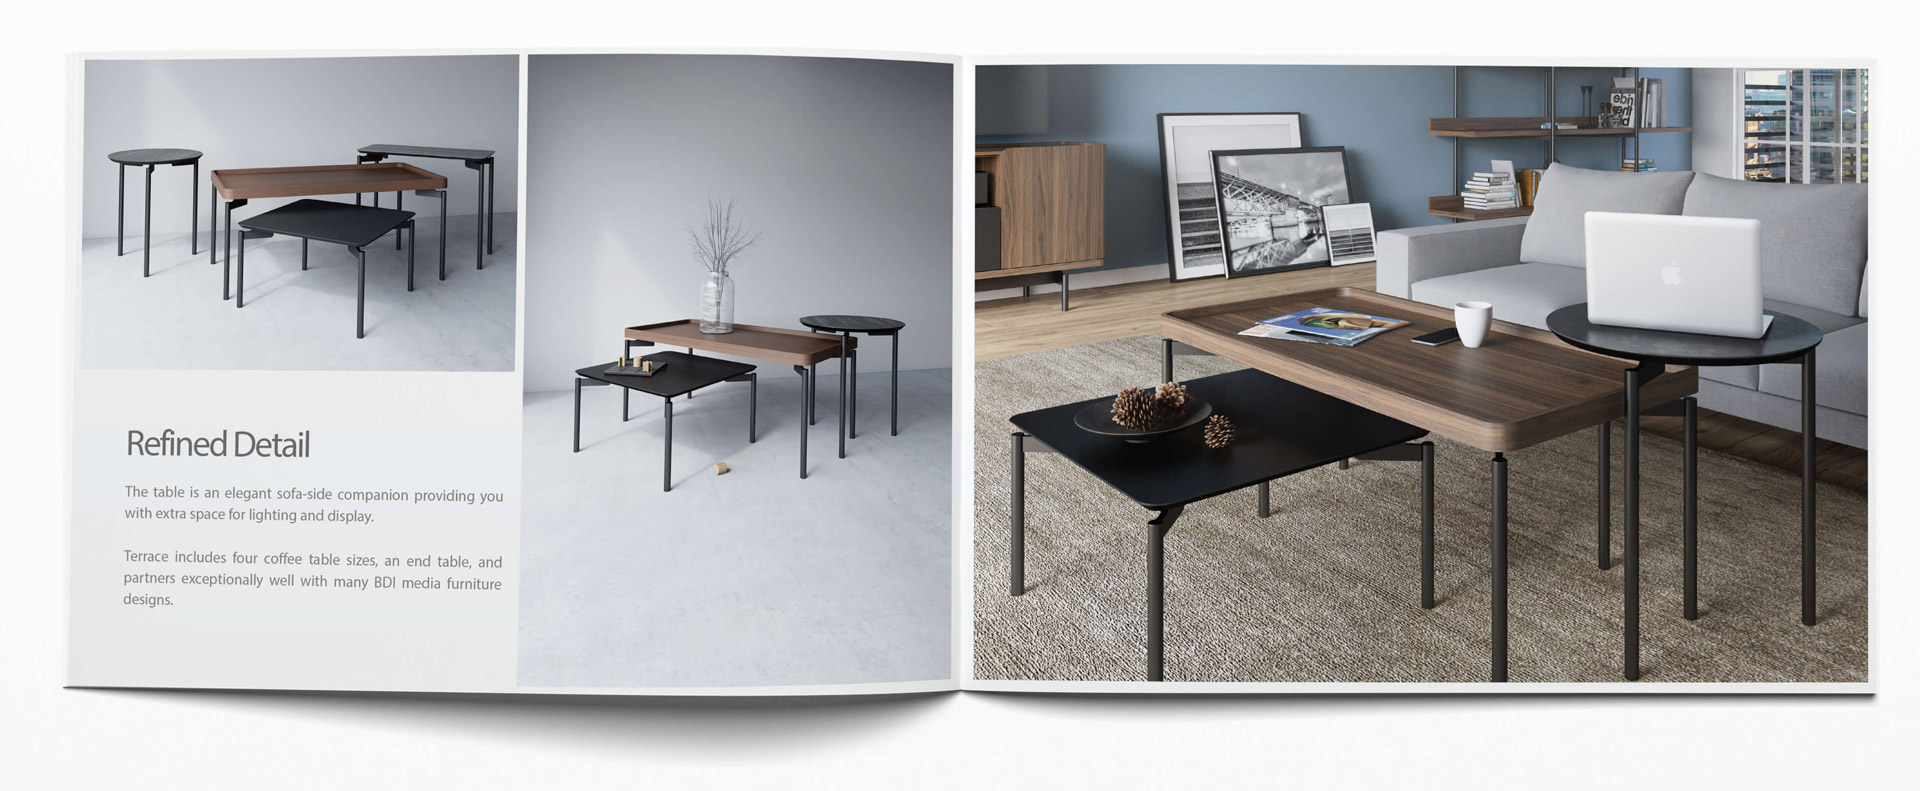 Furniture Catalog Spread with 3D Lifestyles and Product CGI